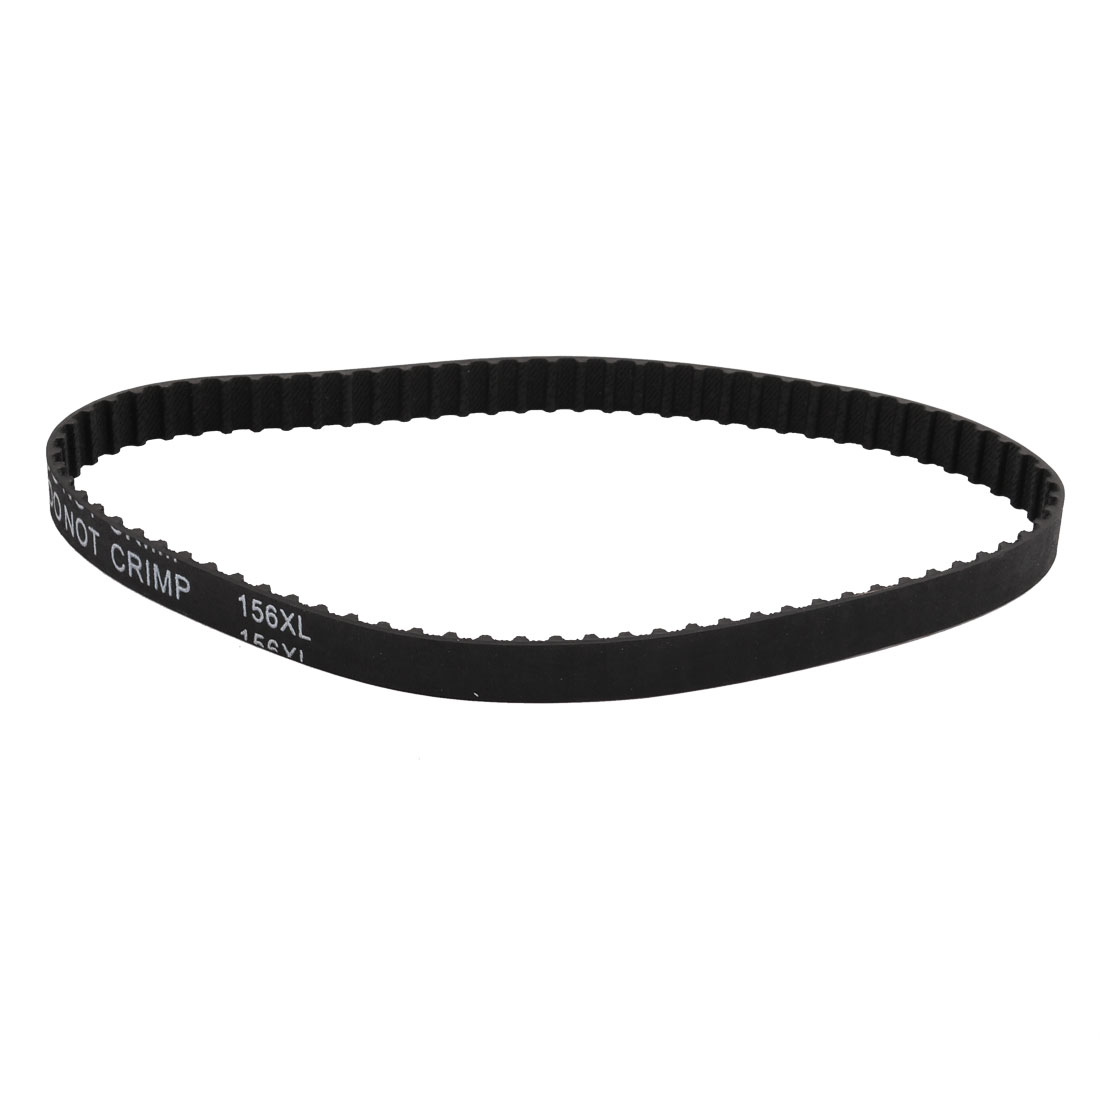 156XL 78 Teeth 10mm Width 5.08mm Pitch Stepper Motor Rubber Timing Belt Black